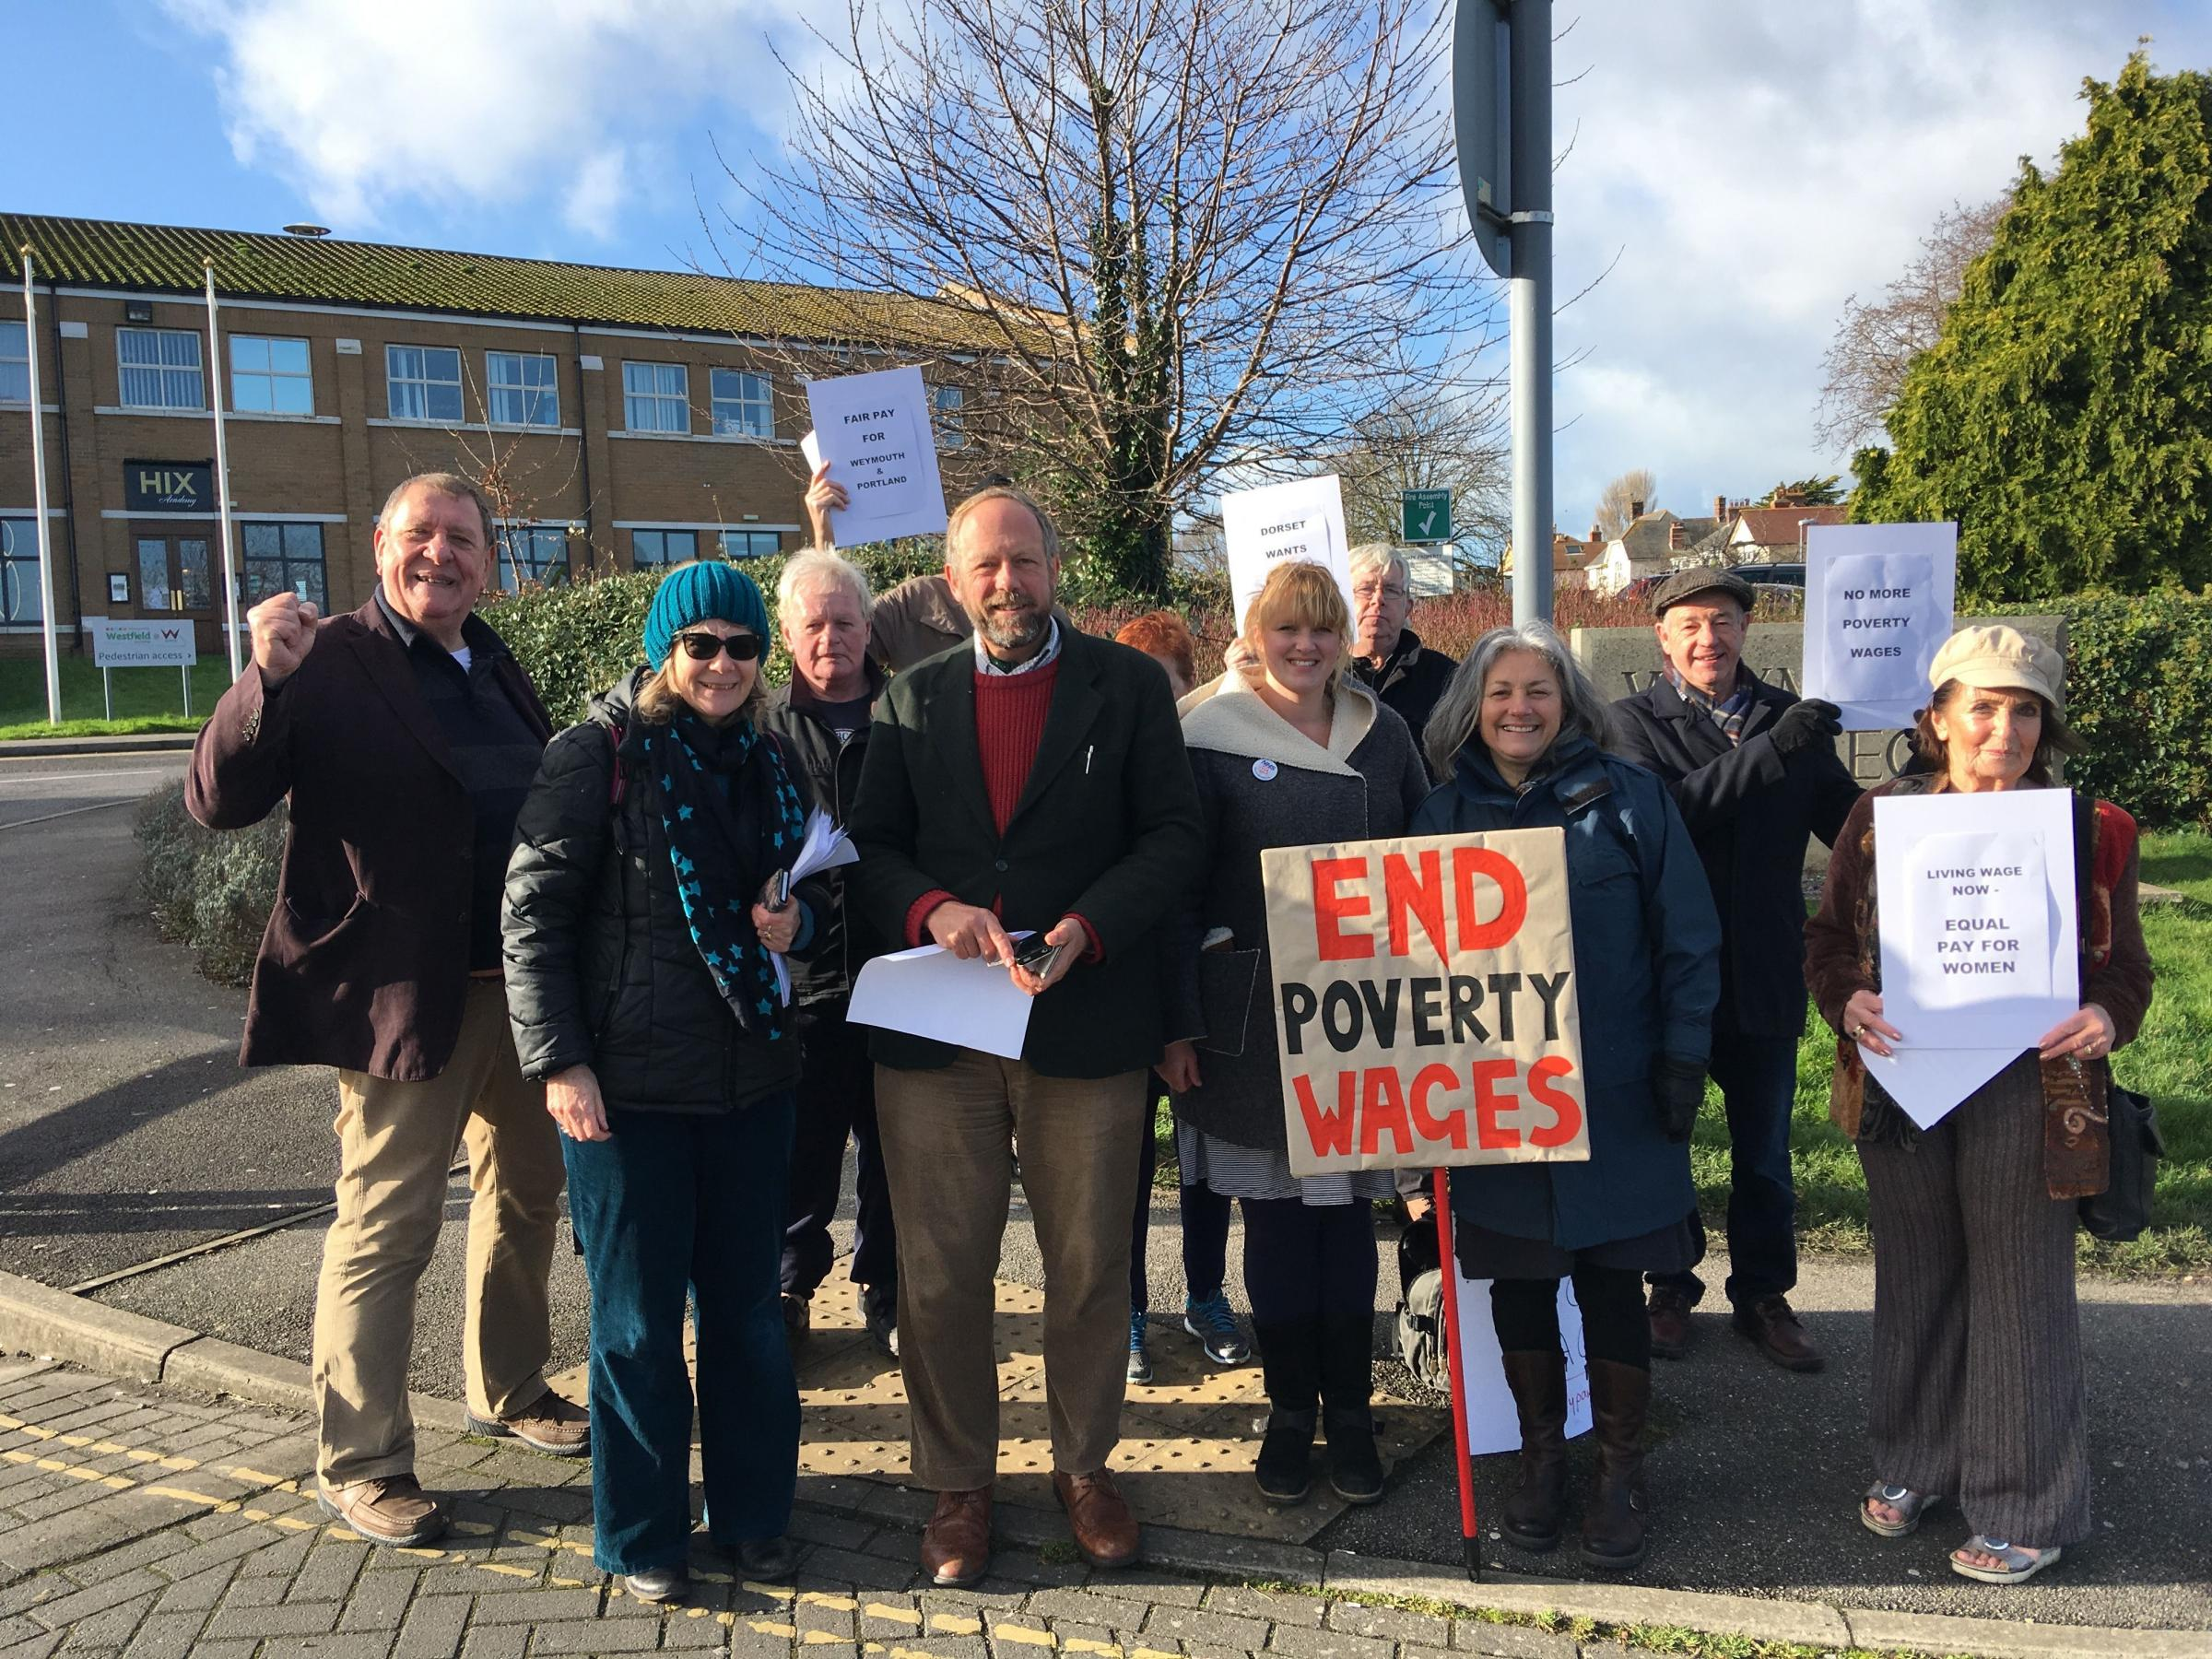 END POVERTY WAGES: Campaigners outside Weymouth College